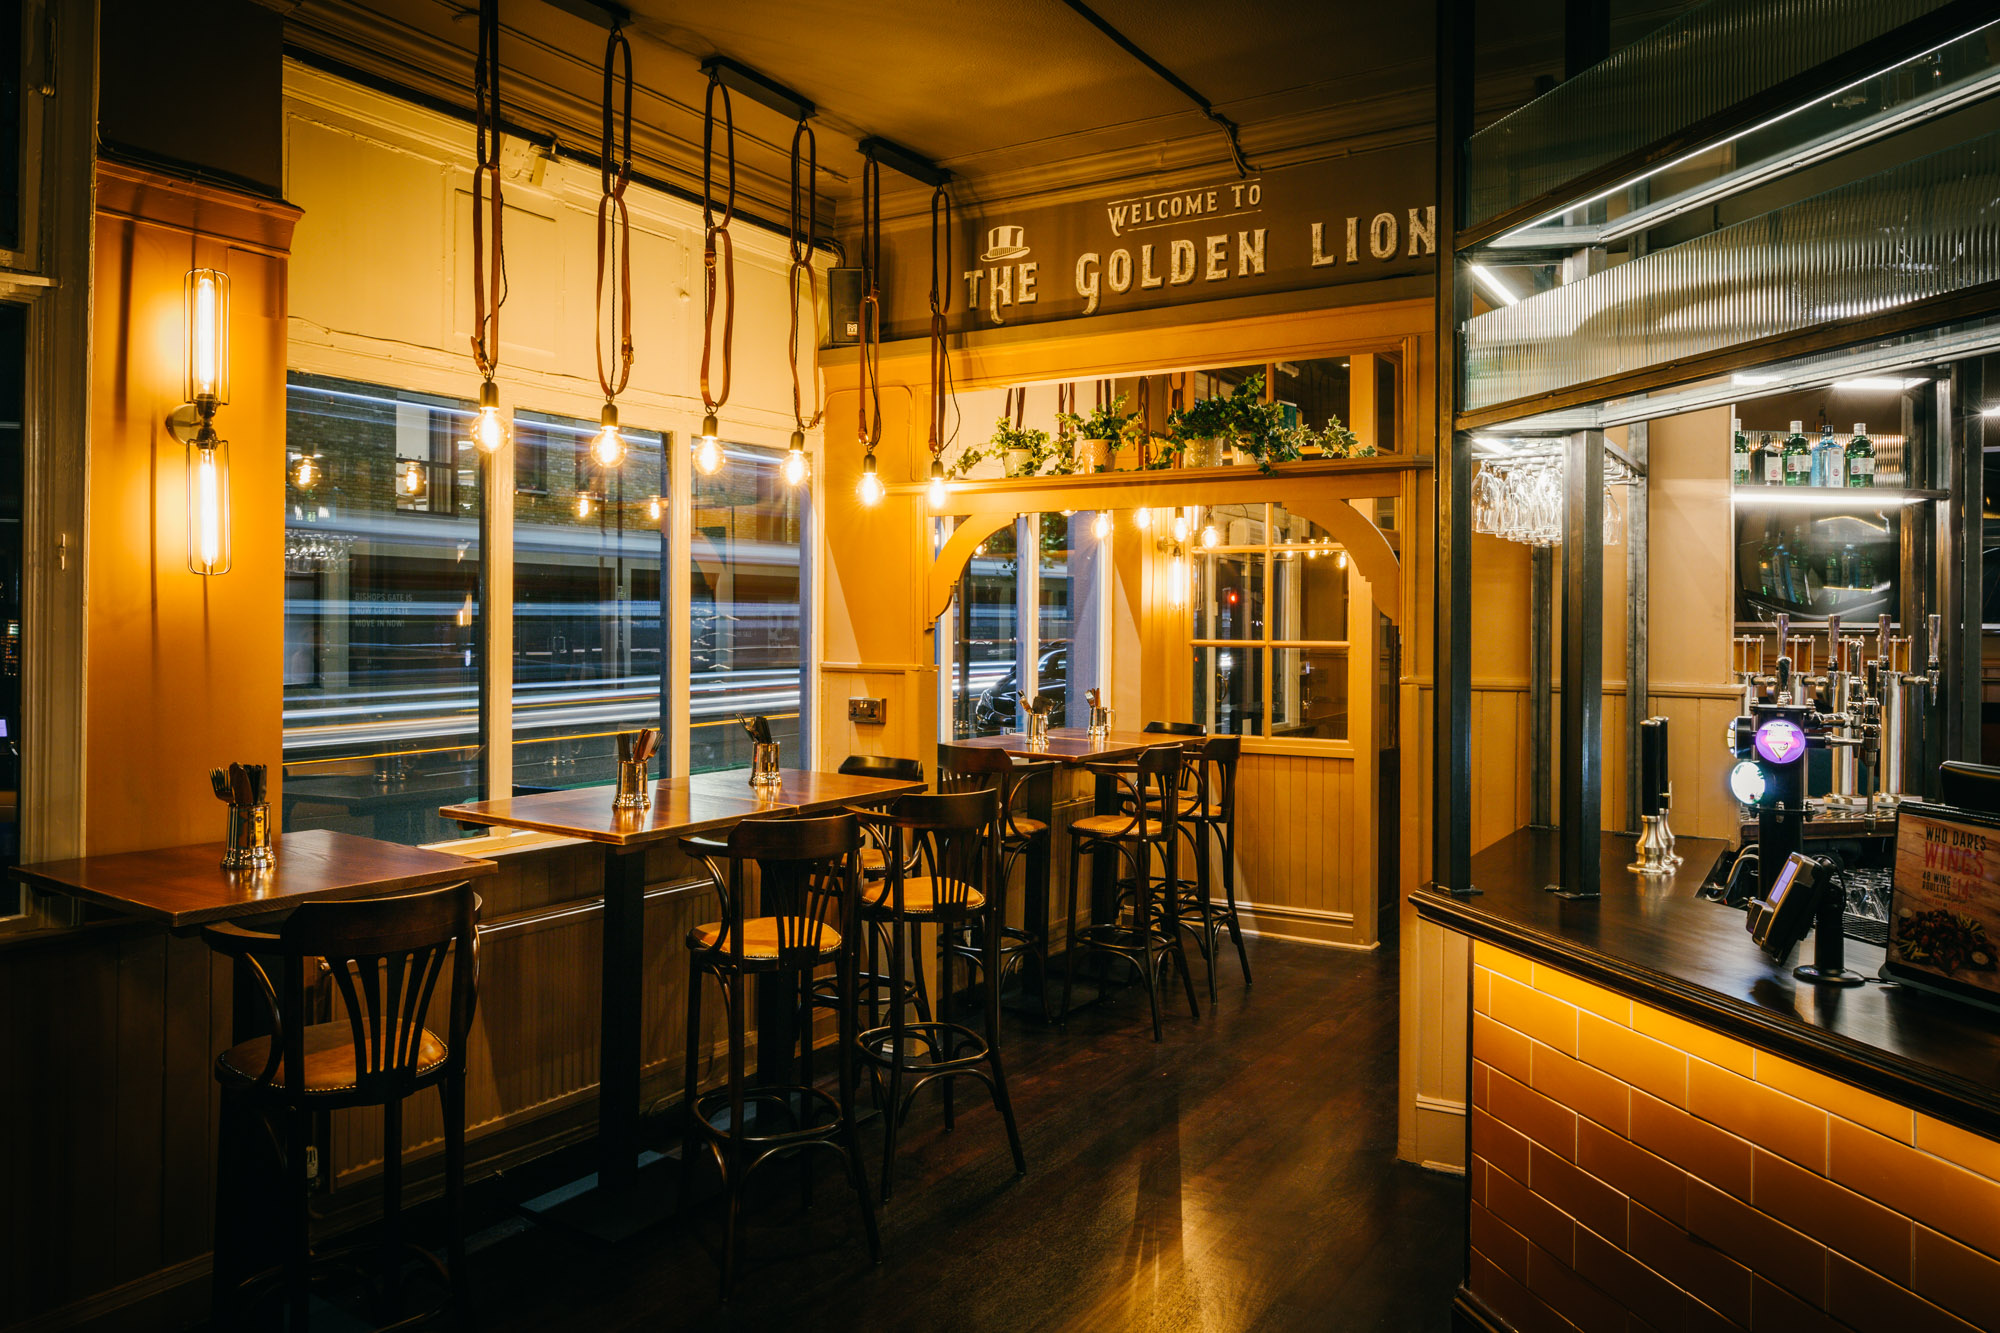 19.03.19 The Gold Lion (43 of 58).jpg